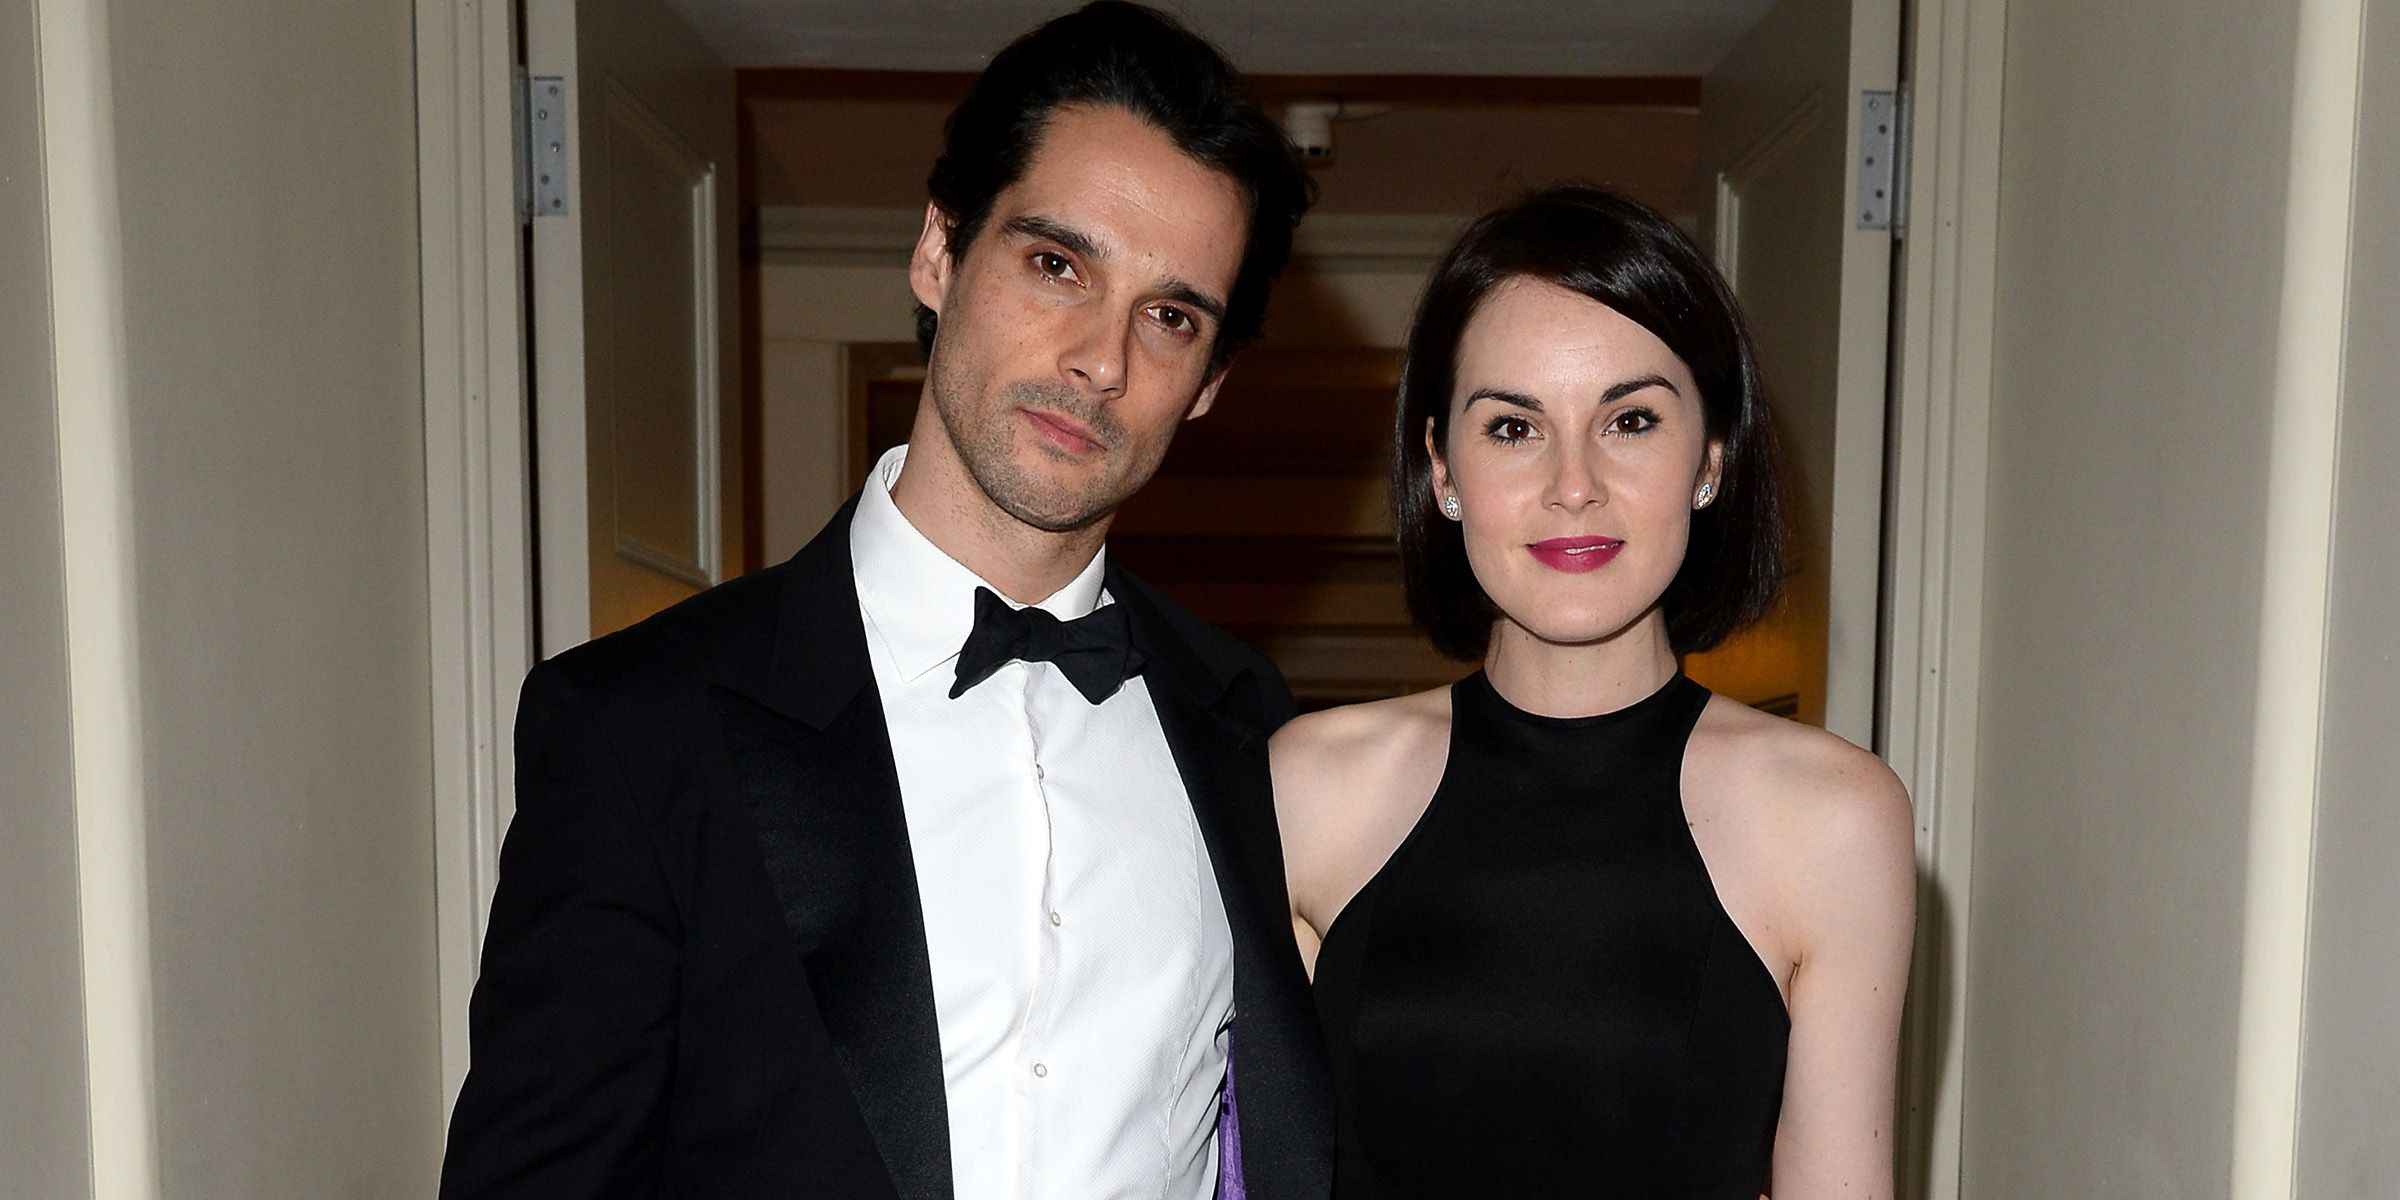 Michelle Dockery Considers Herself A Widow After Fiance S Cancer Death Dineen is a businessperson who has been the head of 6 different companies and presently holds the position of chairman at syneos health, inc. michelle dockery considers herself a